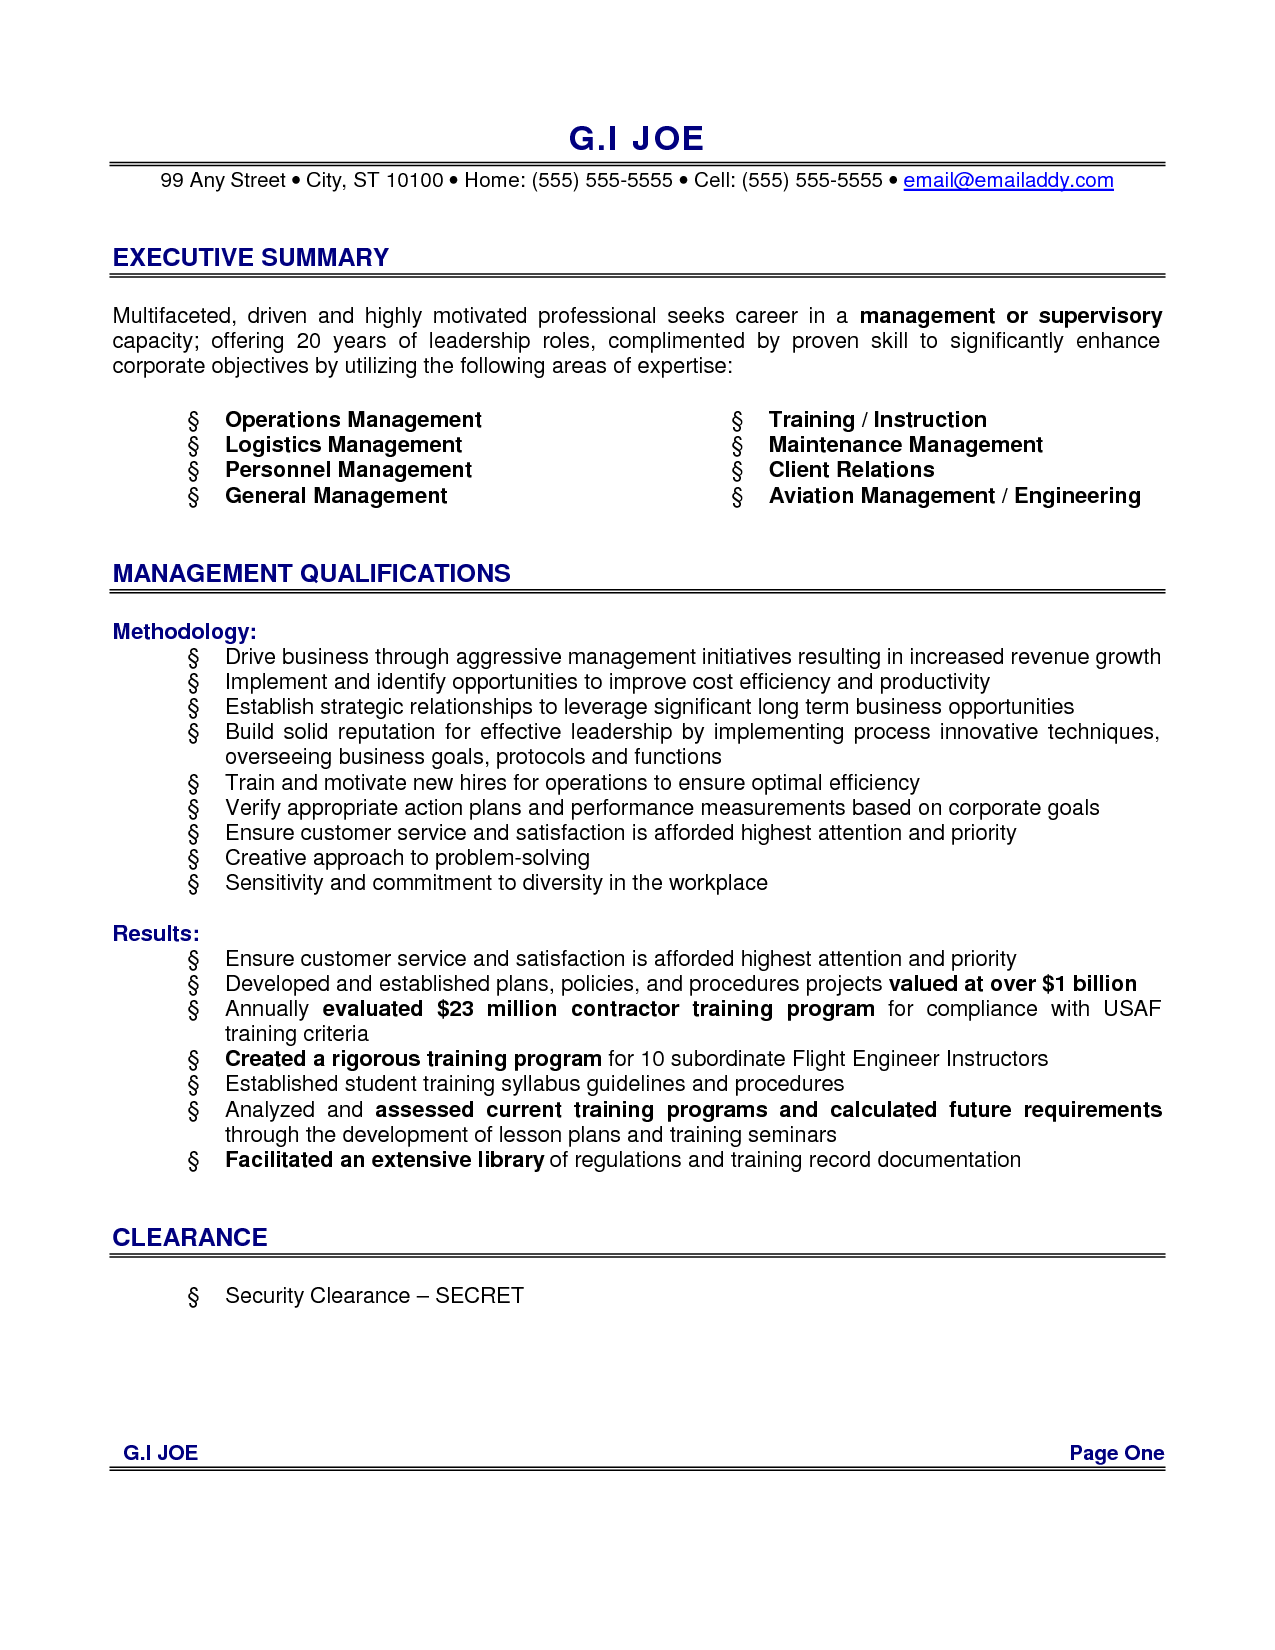 Sample Resume Summary Resumeexamples For Executive Summary With Management